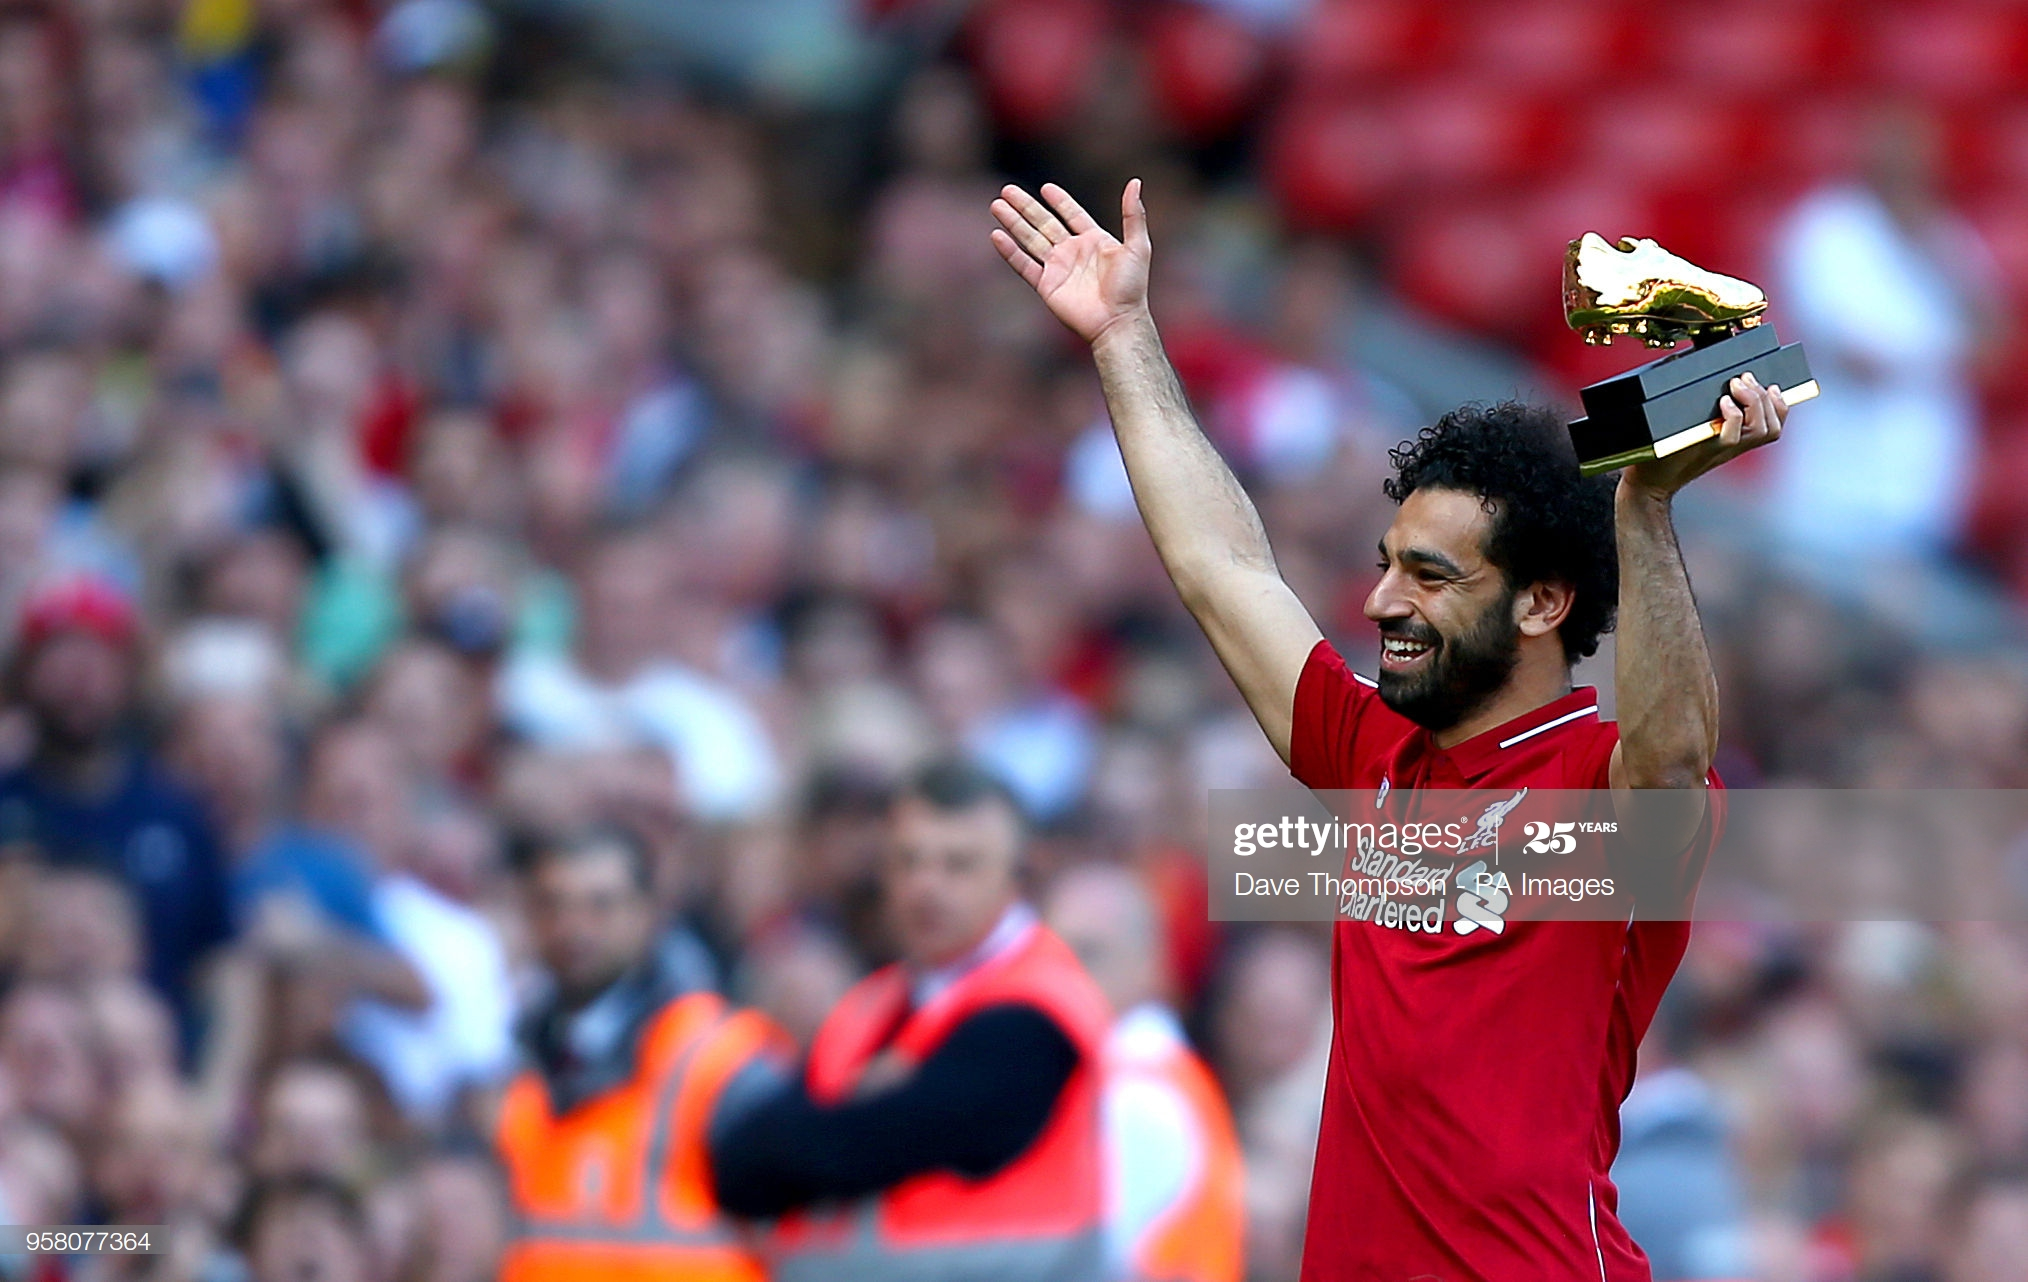 Liverpool's Mohamed Salah with the golden boot award after the Premier League match at Anfield, Liverpool. (Photo by Dave Thompson/PA Images via Getty Images)